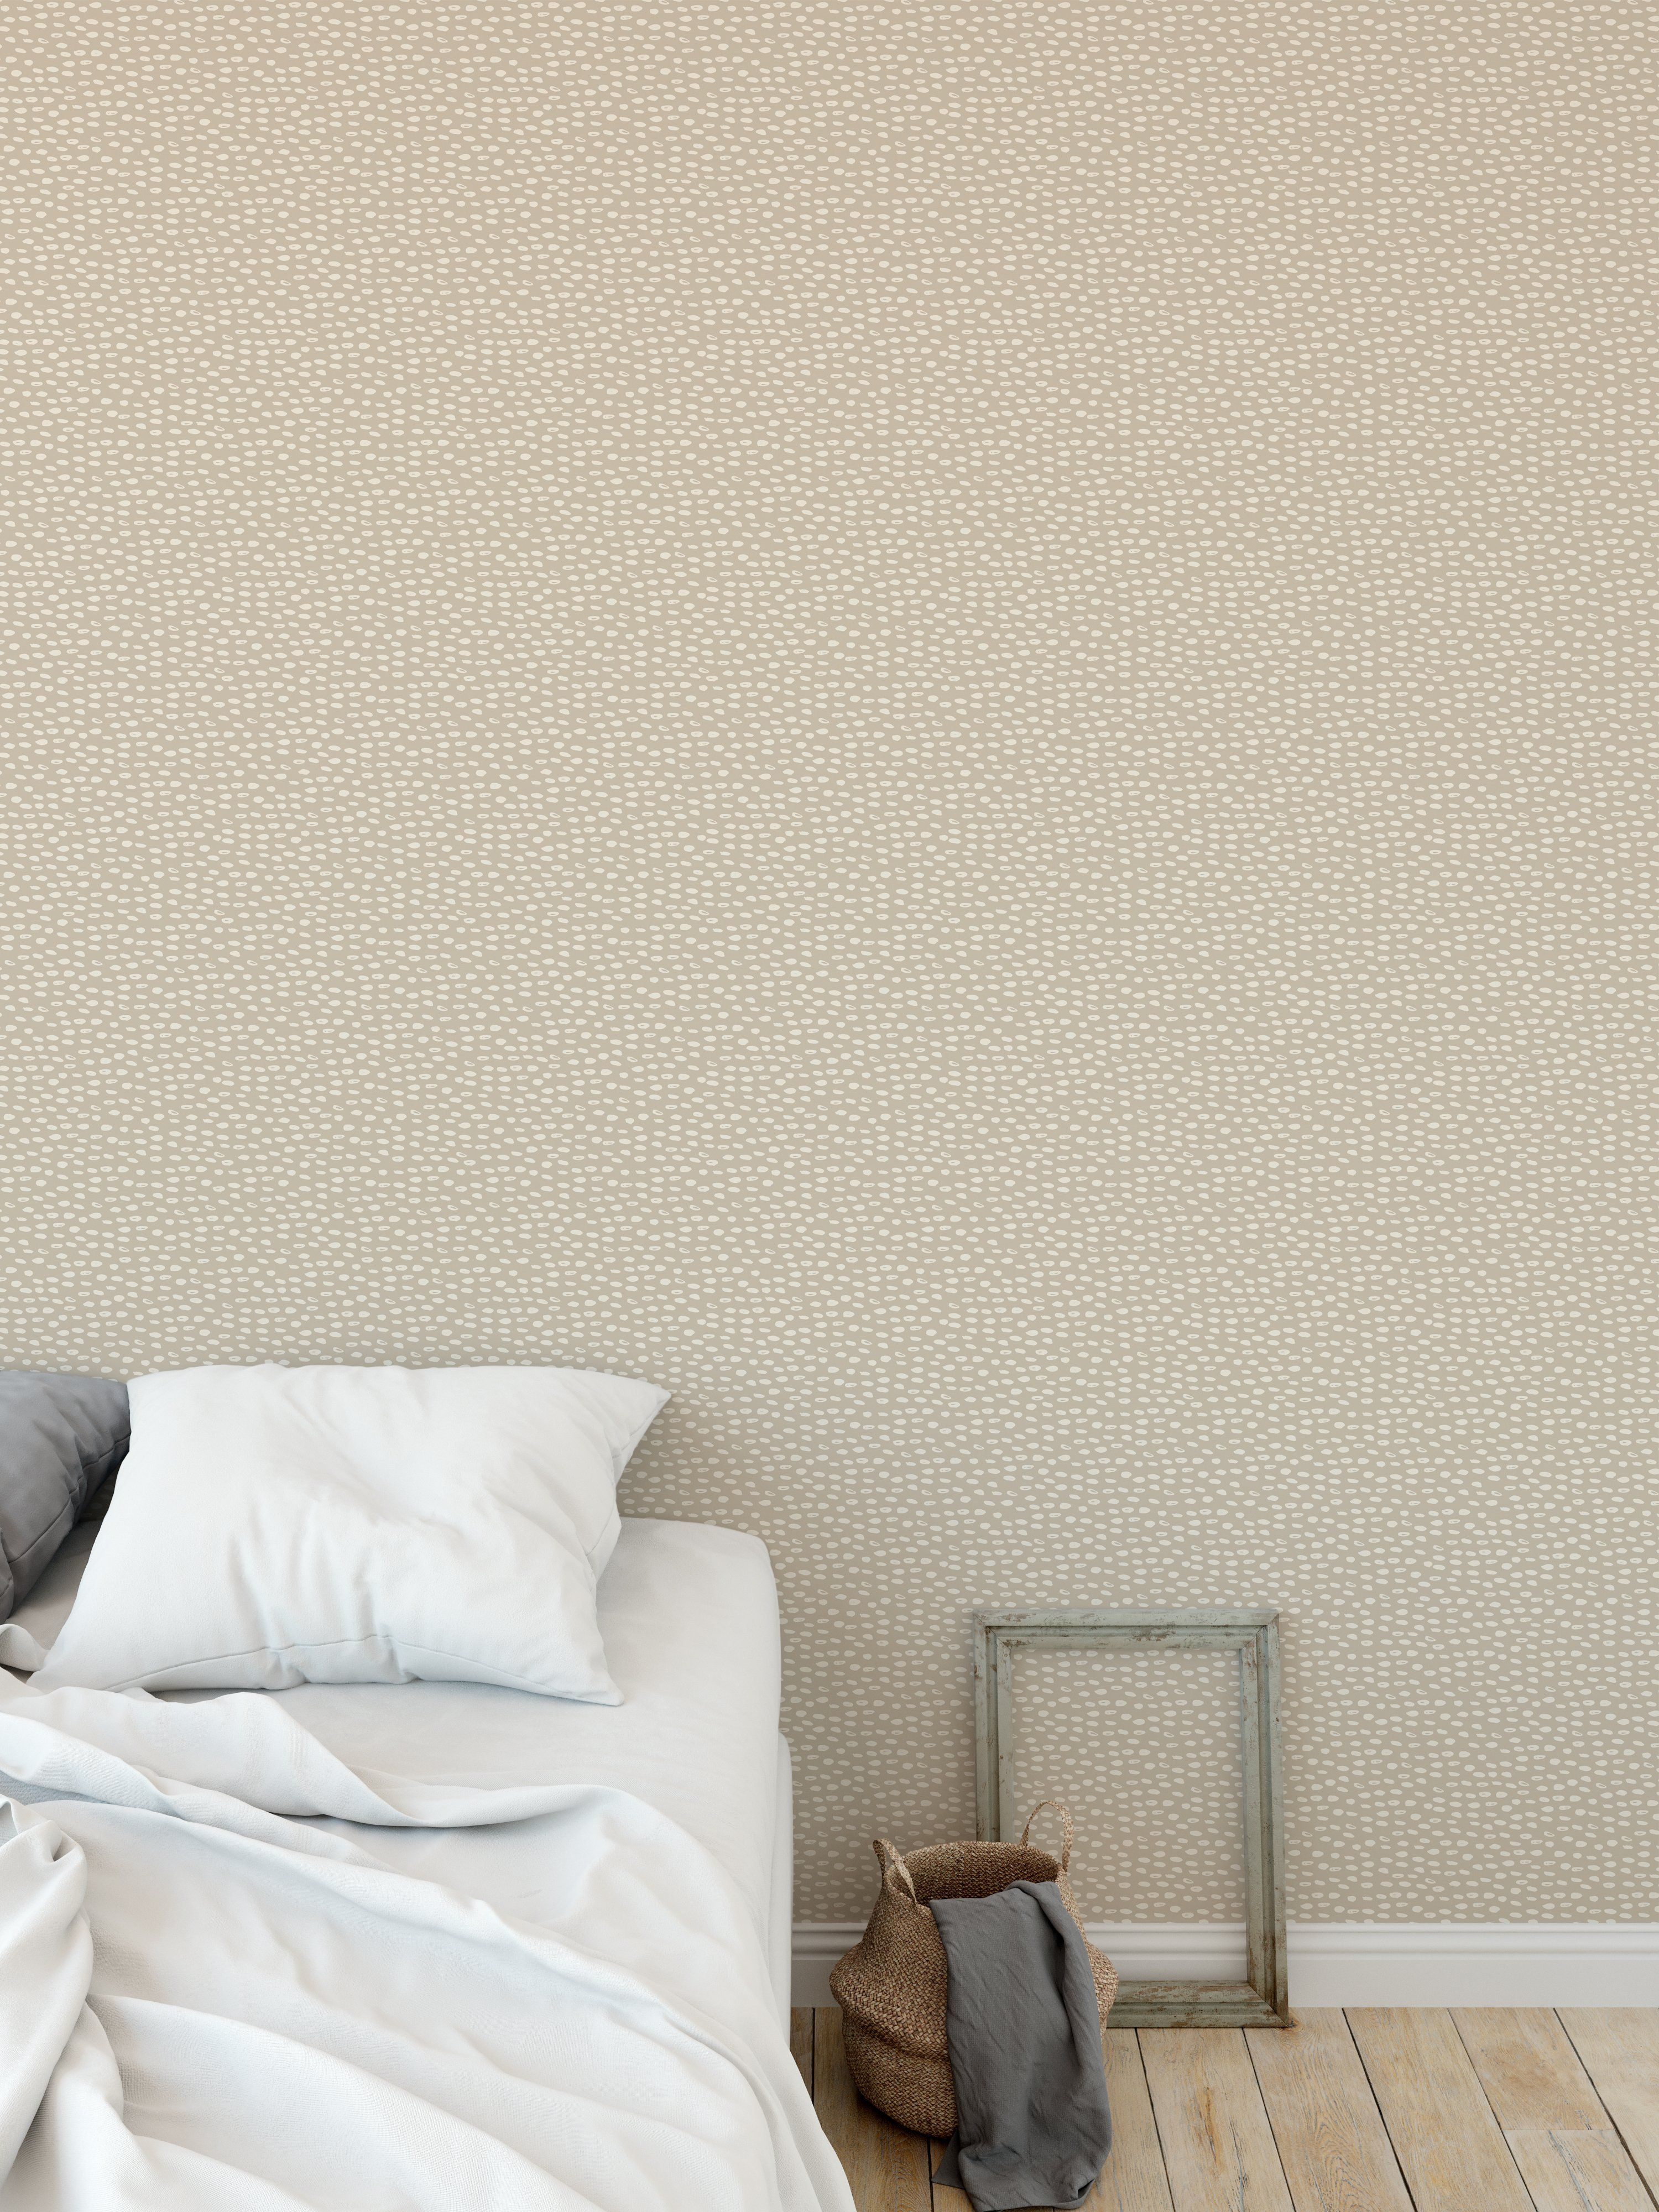 POLKA DOT ABSTRACT BEIGE Peel and Stick Wallpaper By Kavka Designs - 2ft x 16ft